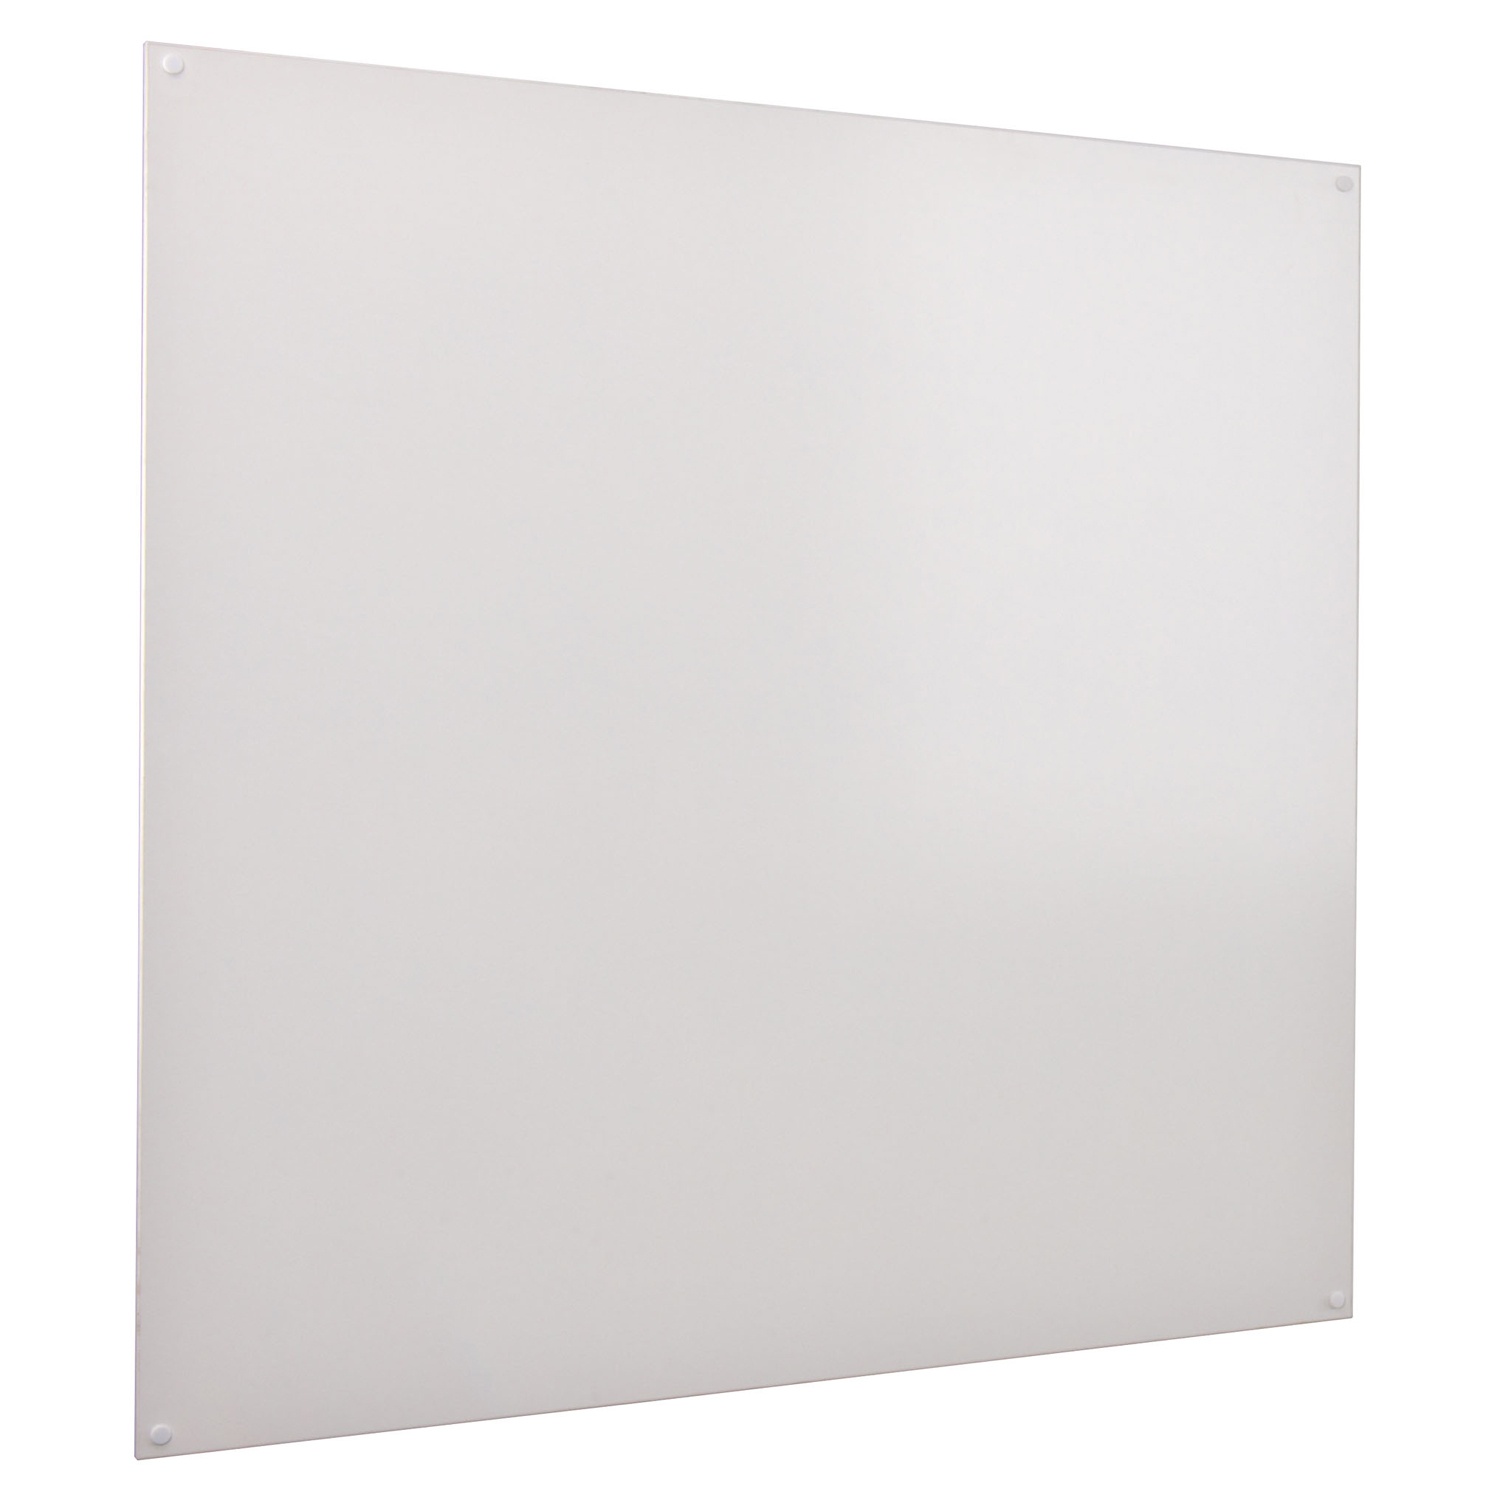 Plain White example of a whiteboard